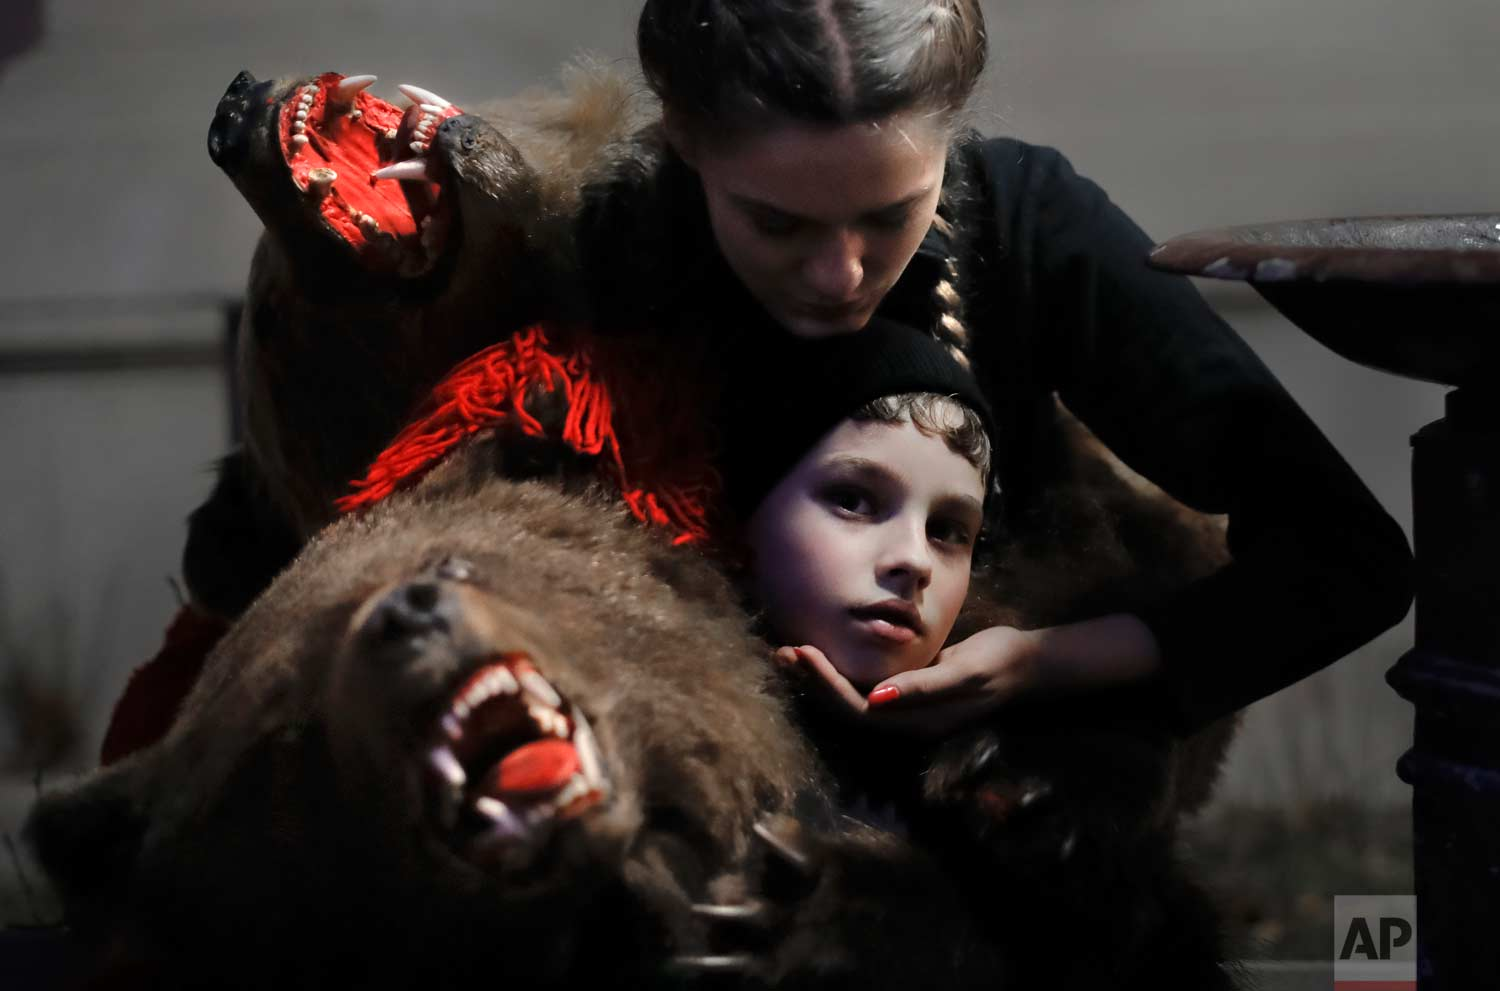 In this Thursday, Dec. 28, 2017, picture Roxana Stan, top, supports 9 year-old Florin Paduceanu as they take a brake from the parade, in Piatra Neamt, Romania. (AP Photo/Vadim Ghirda)